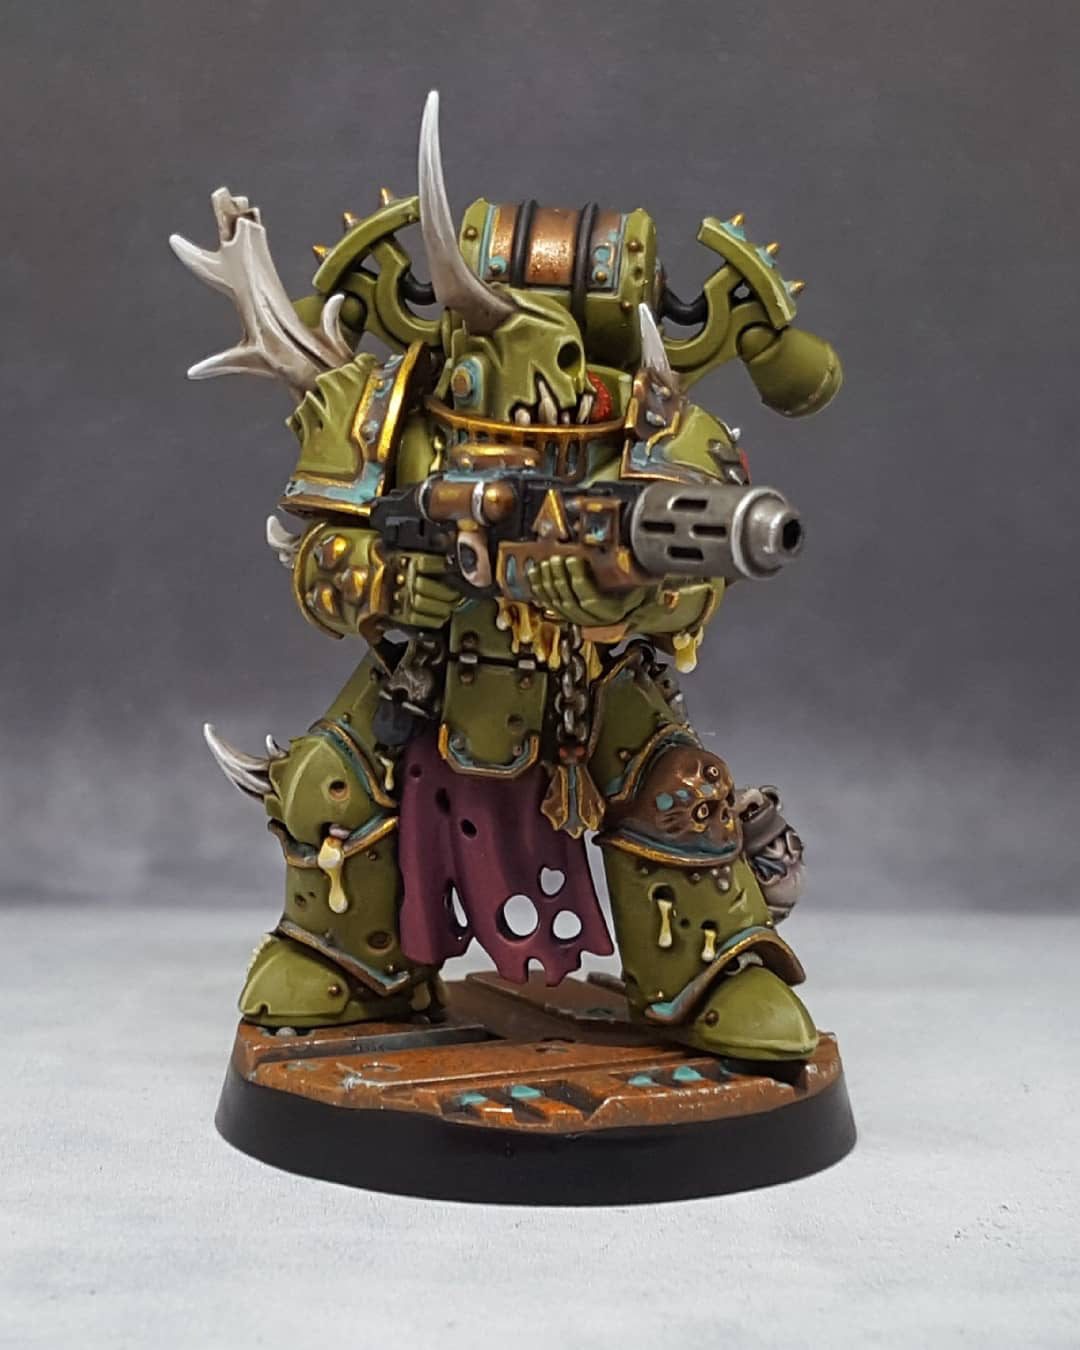 Another new Plaguemarine model.